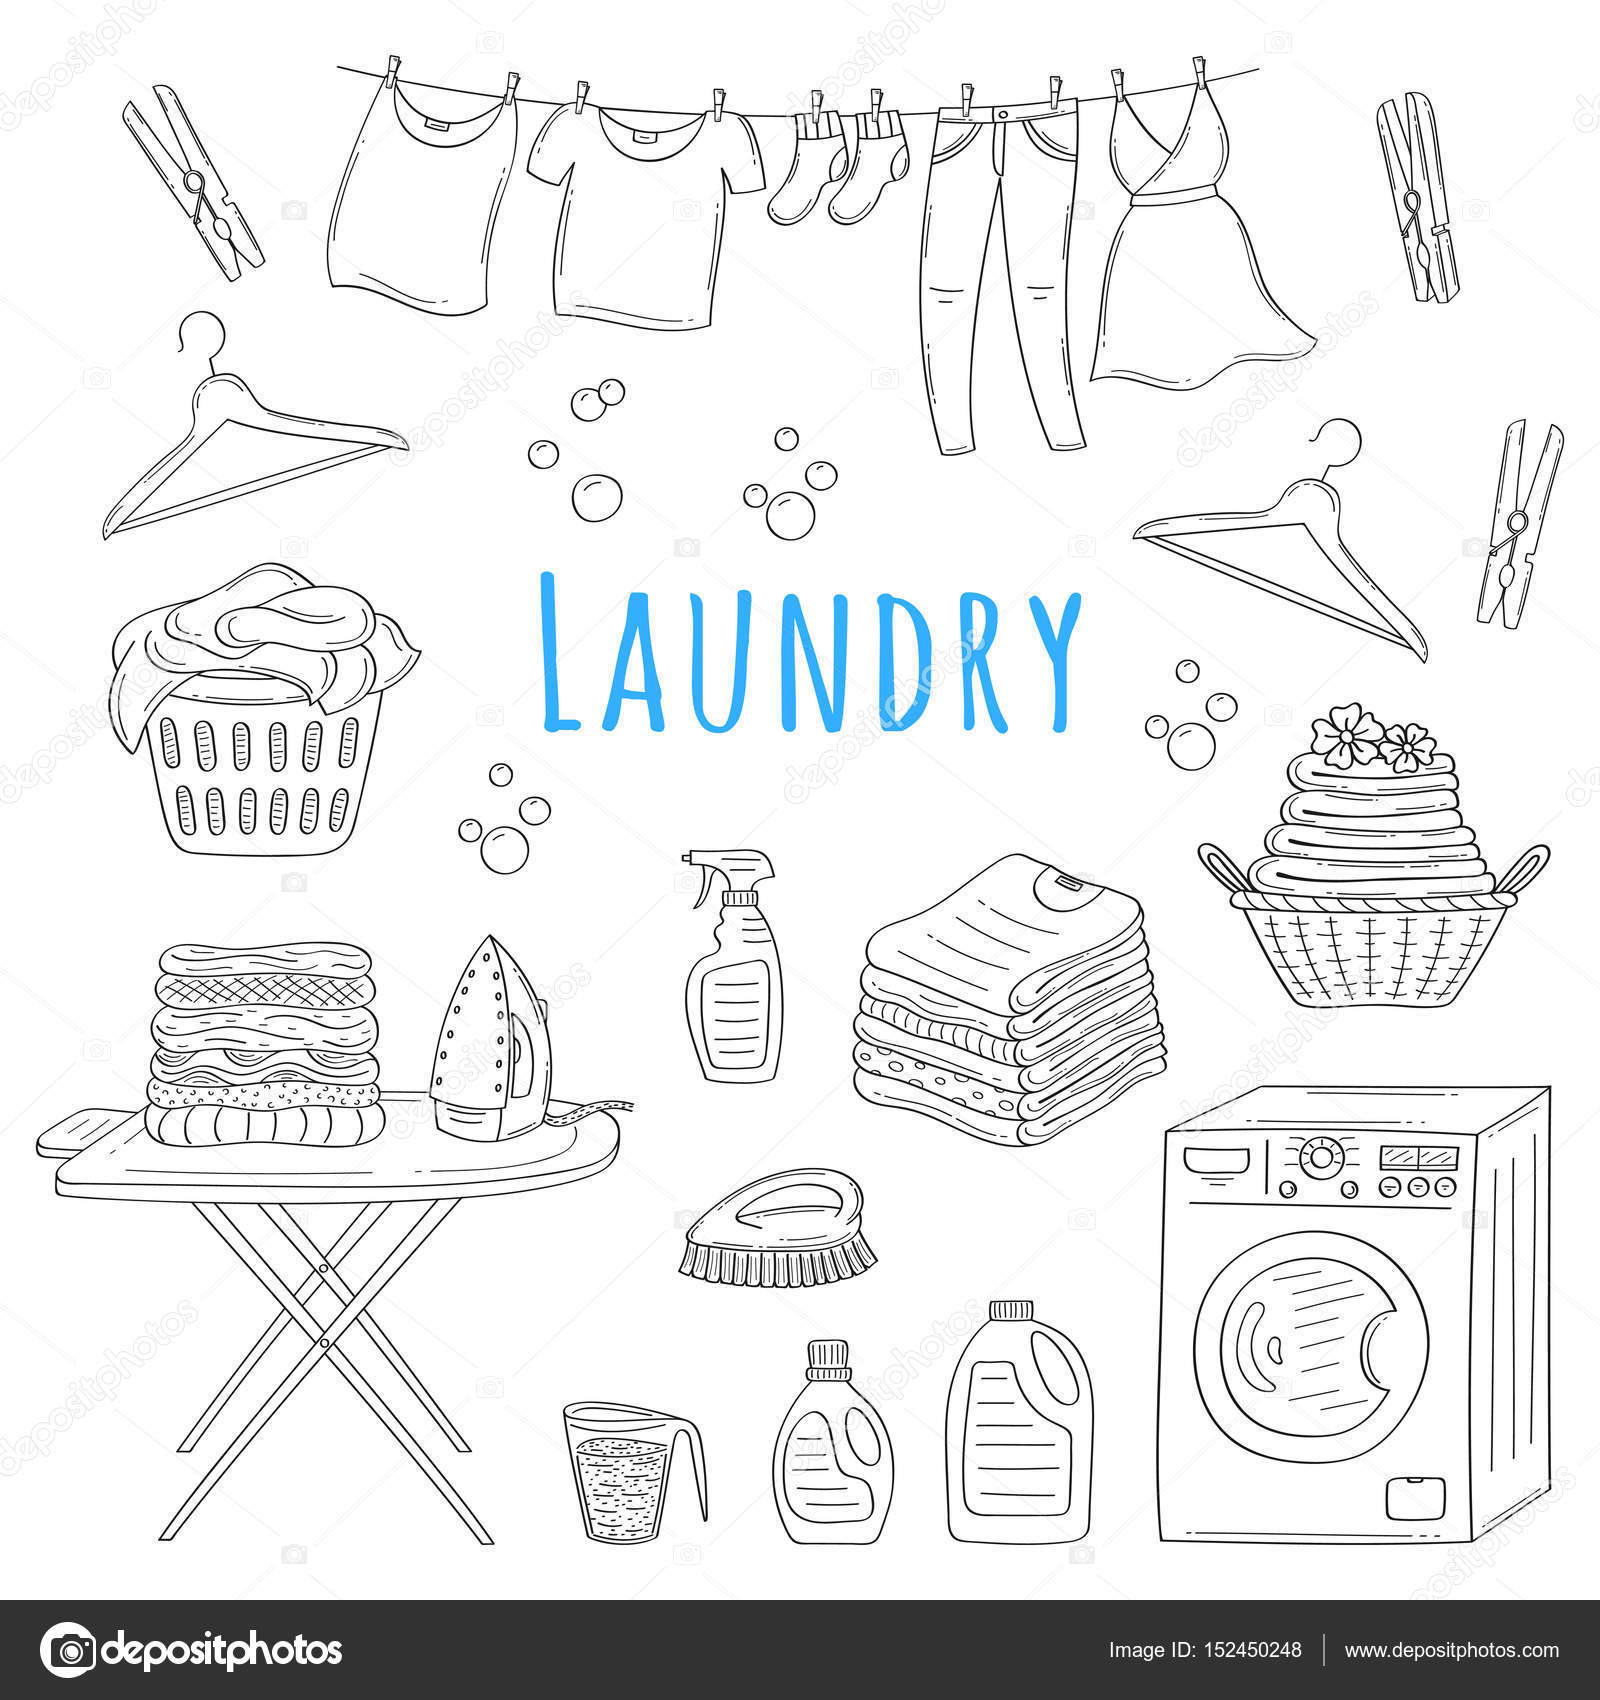 Laundry service hand drawn doodle icons set vector illustration washing drying and ironing symbols washing machine laundry basket clothes drying iron ironing board hanger folded clothing vector by tedted biocorpaavc Image collections